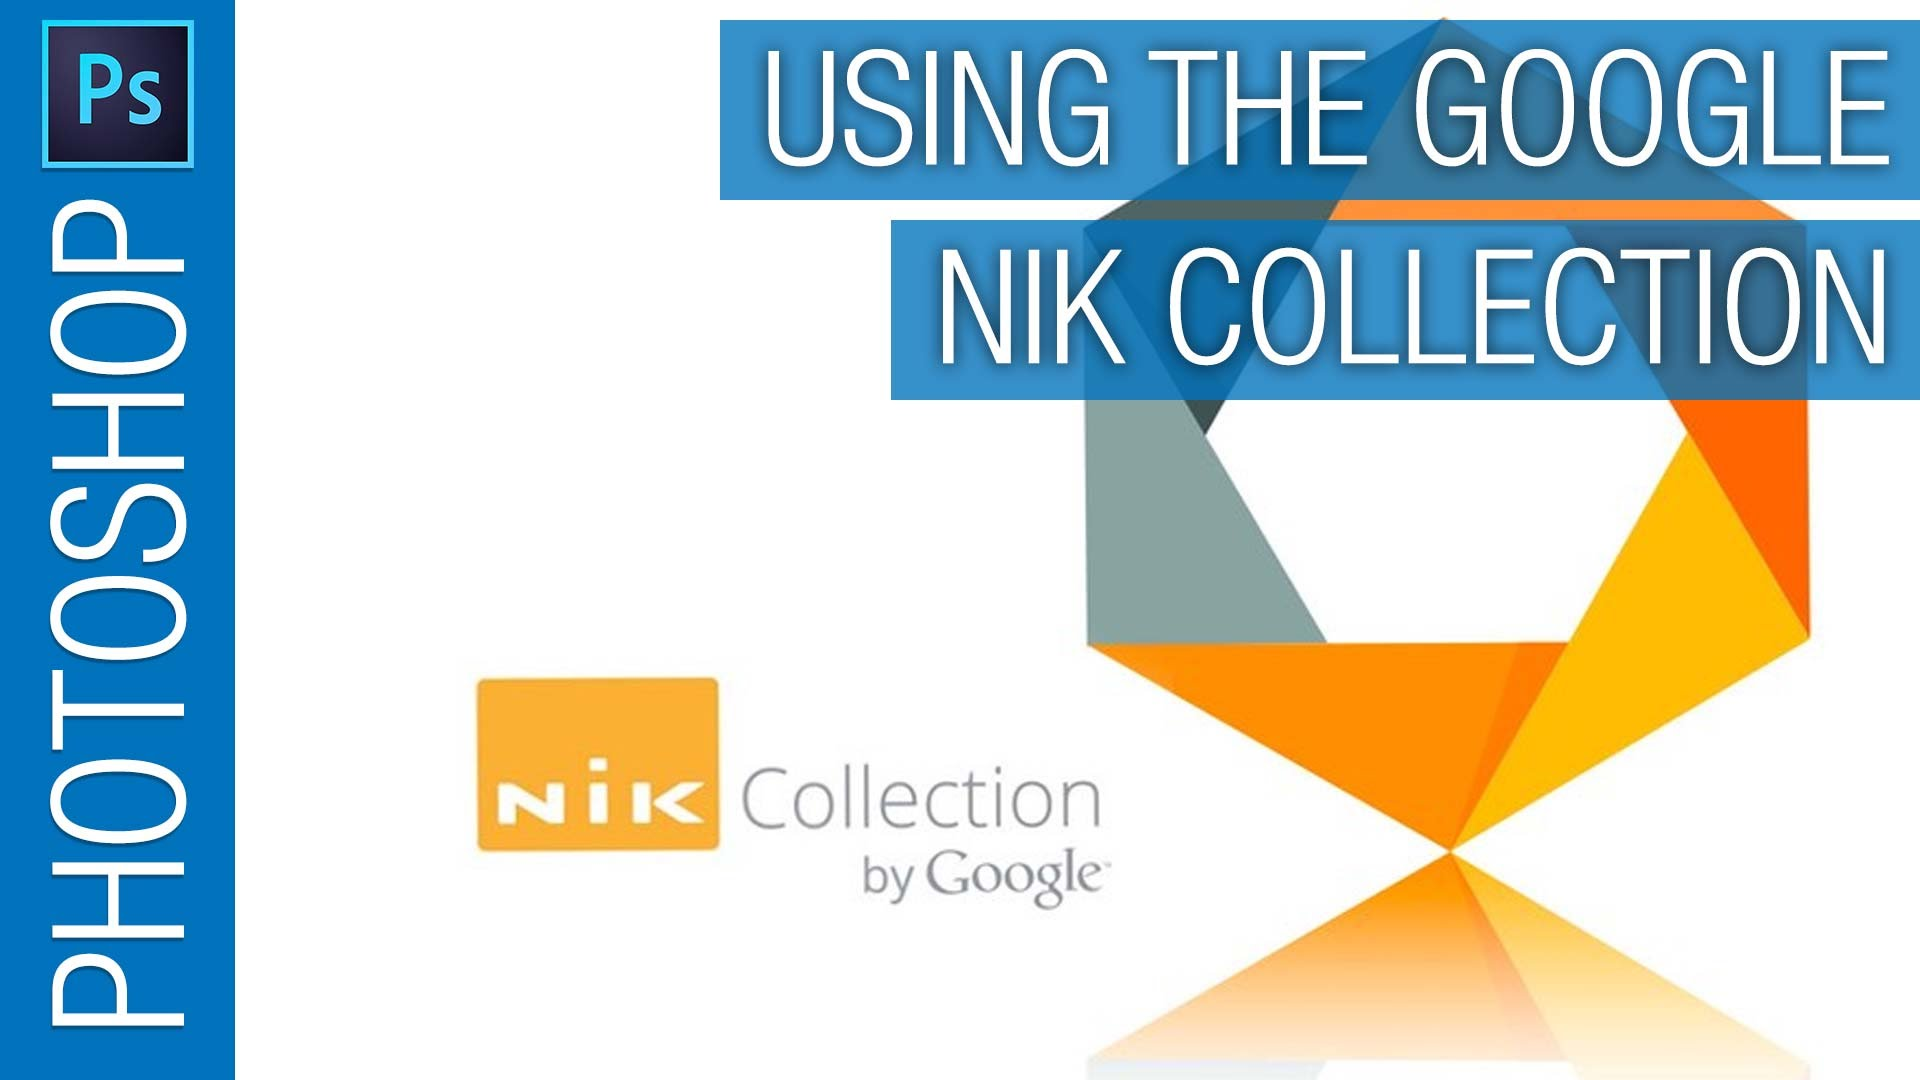 Using the Google Nik Collection as Smart Filters in Adobe Photoshop